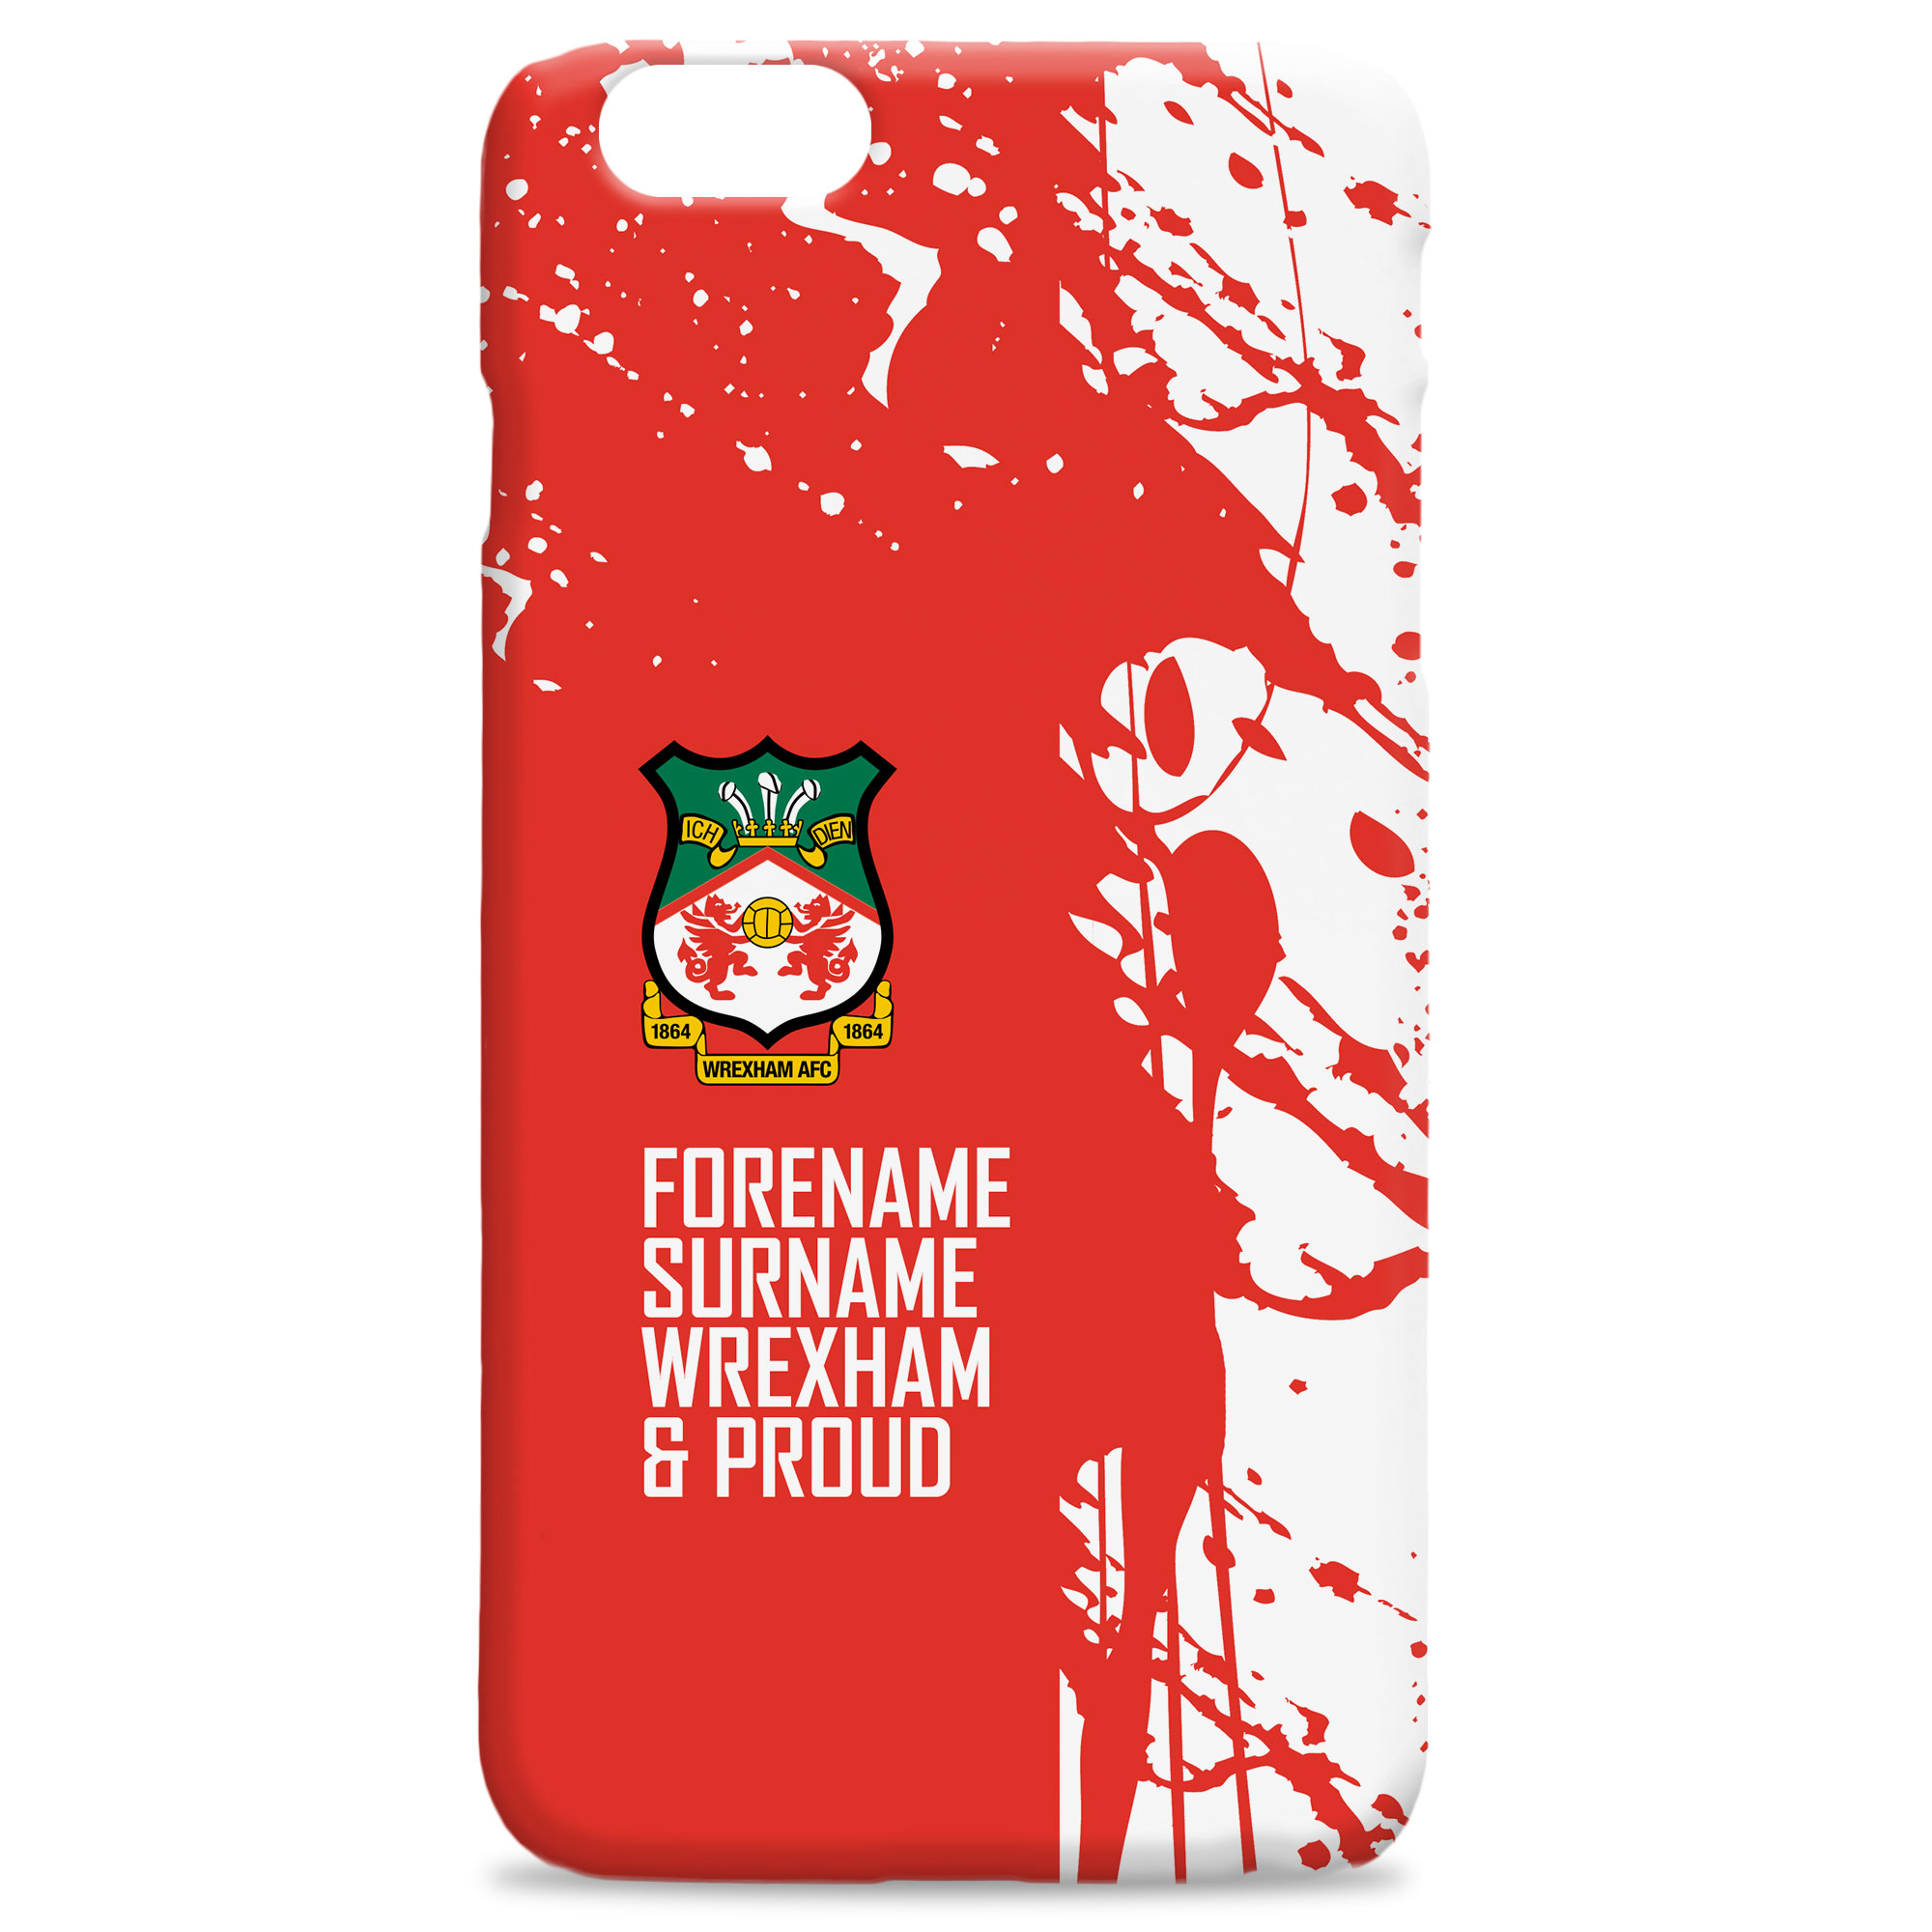 Wrexham AFC Proud Hard Back Phone Case